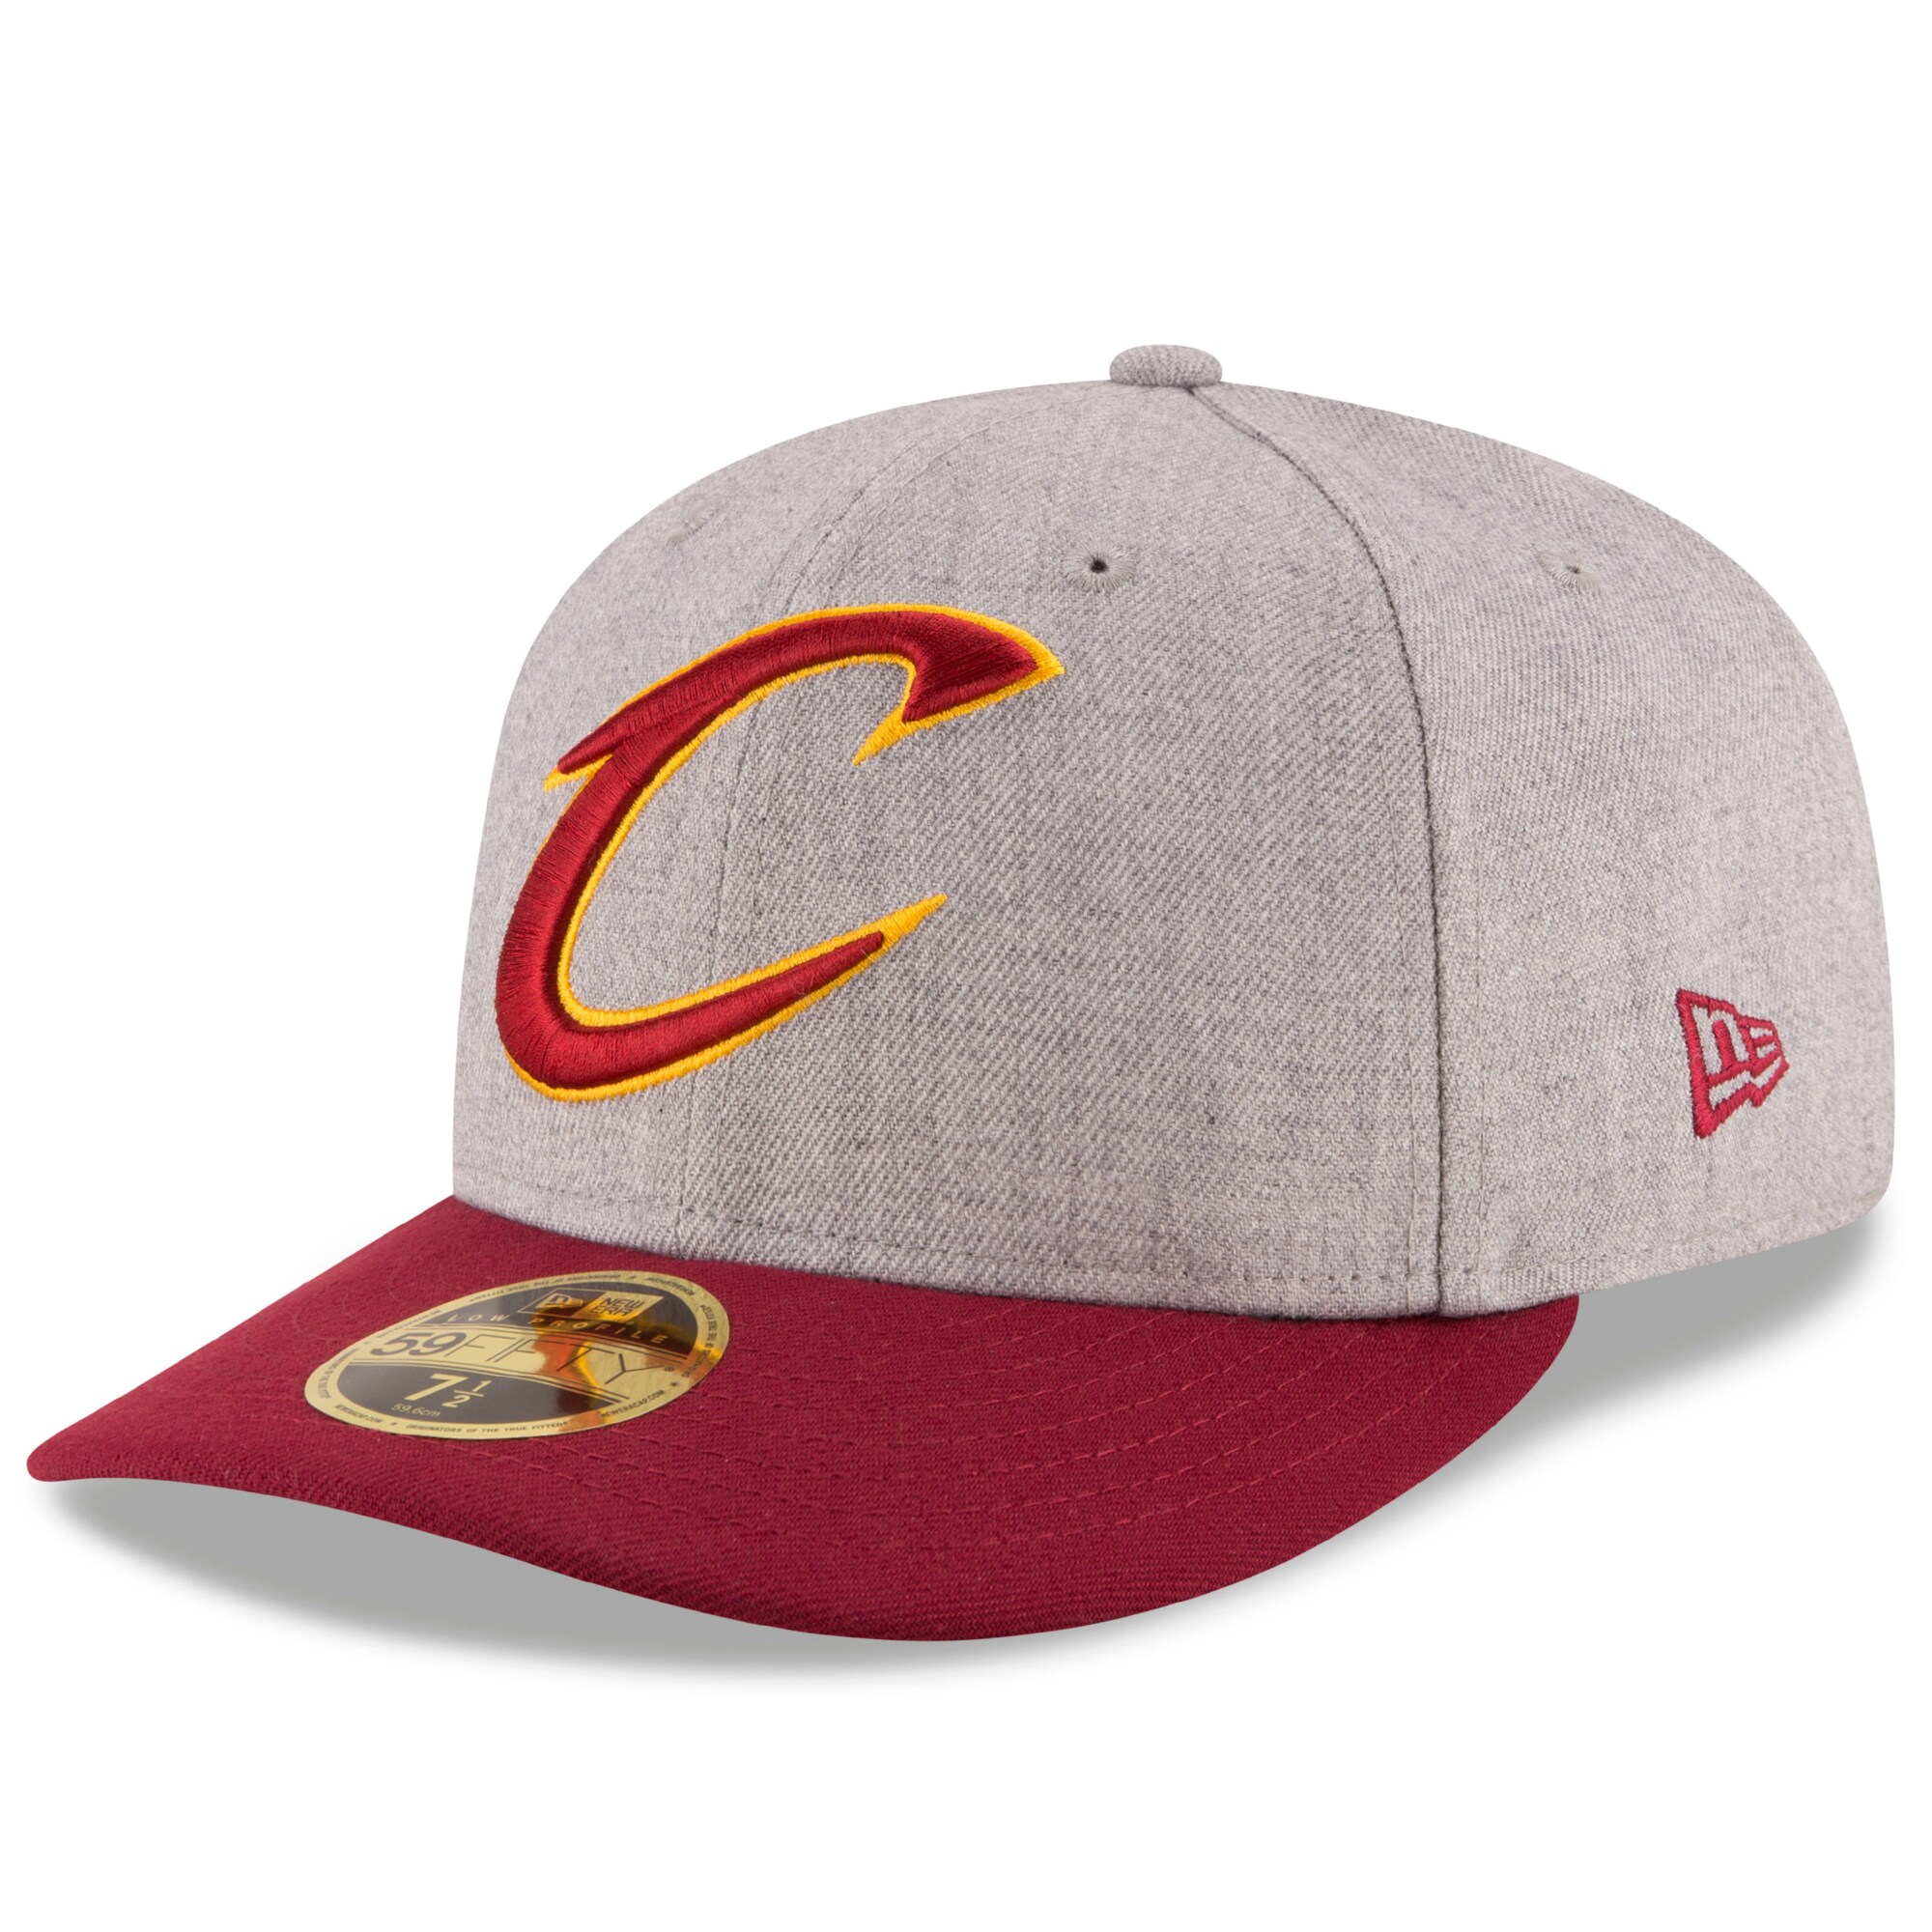 Cleveland Cavaliers New Era Current Logo Change Up Low Profile 59FIFTY Fitted Hat - Heathered Gray/Wine